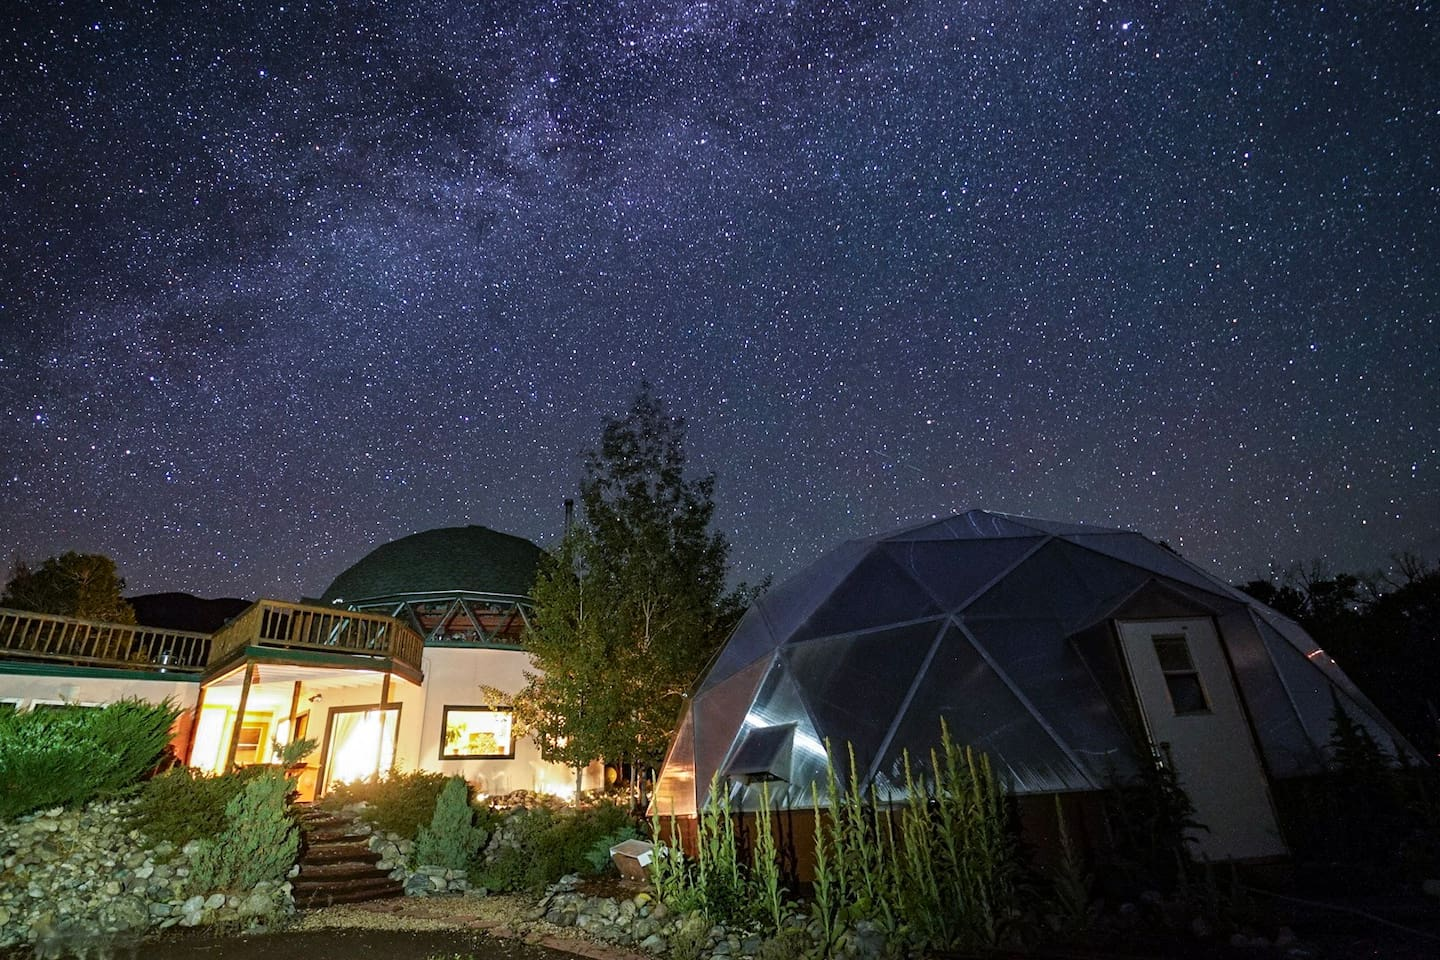 The Milky Way is waiting to welcome you!